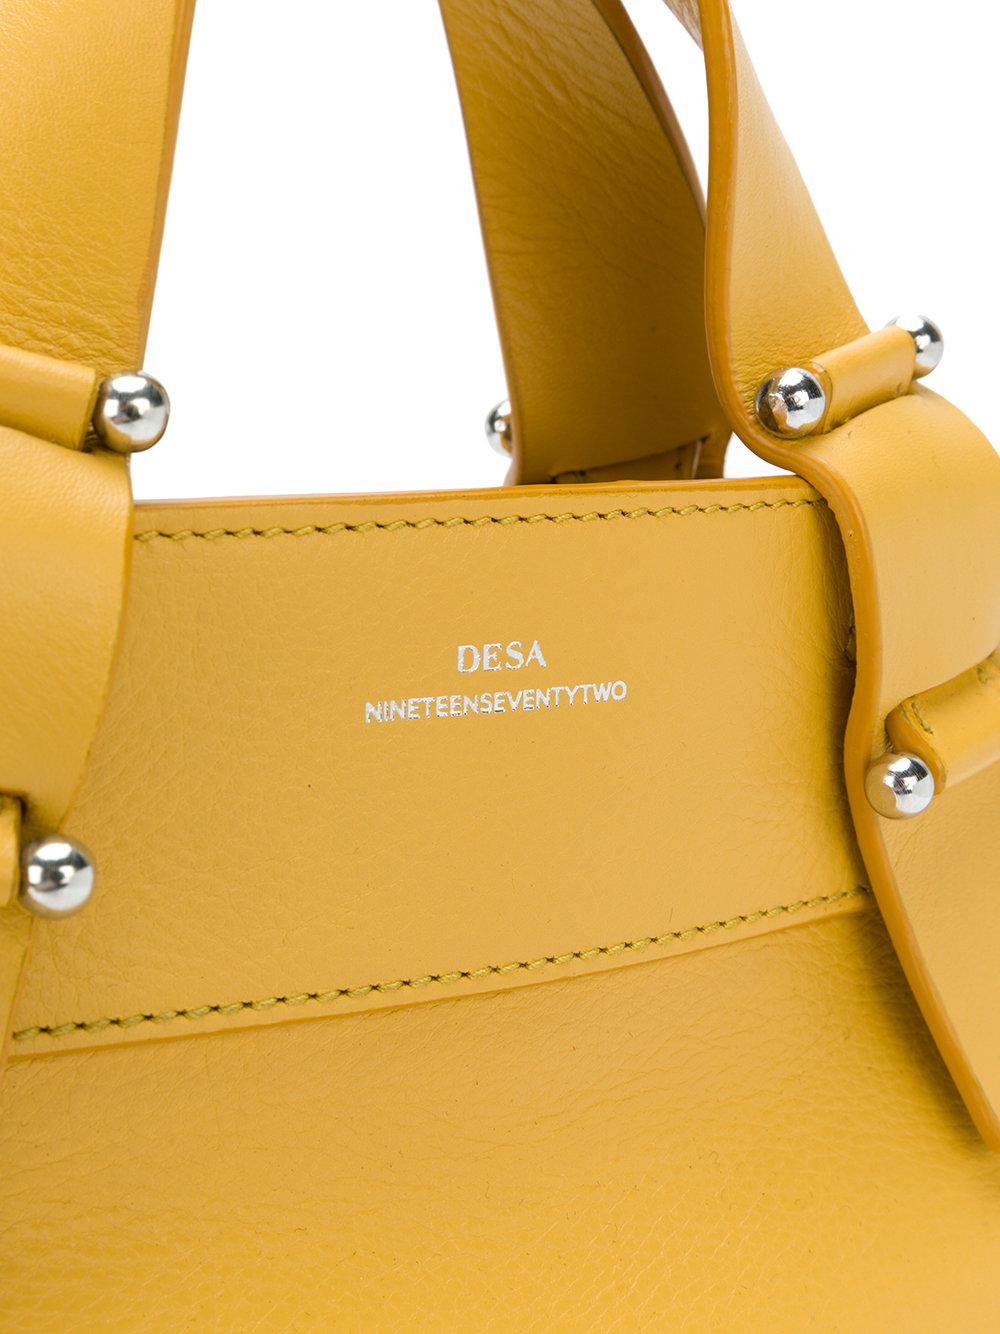 DESA NINETEENSEVENTYTWO Leather Mini Tote Bag in Yellow & Orange (Yellow)